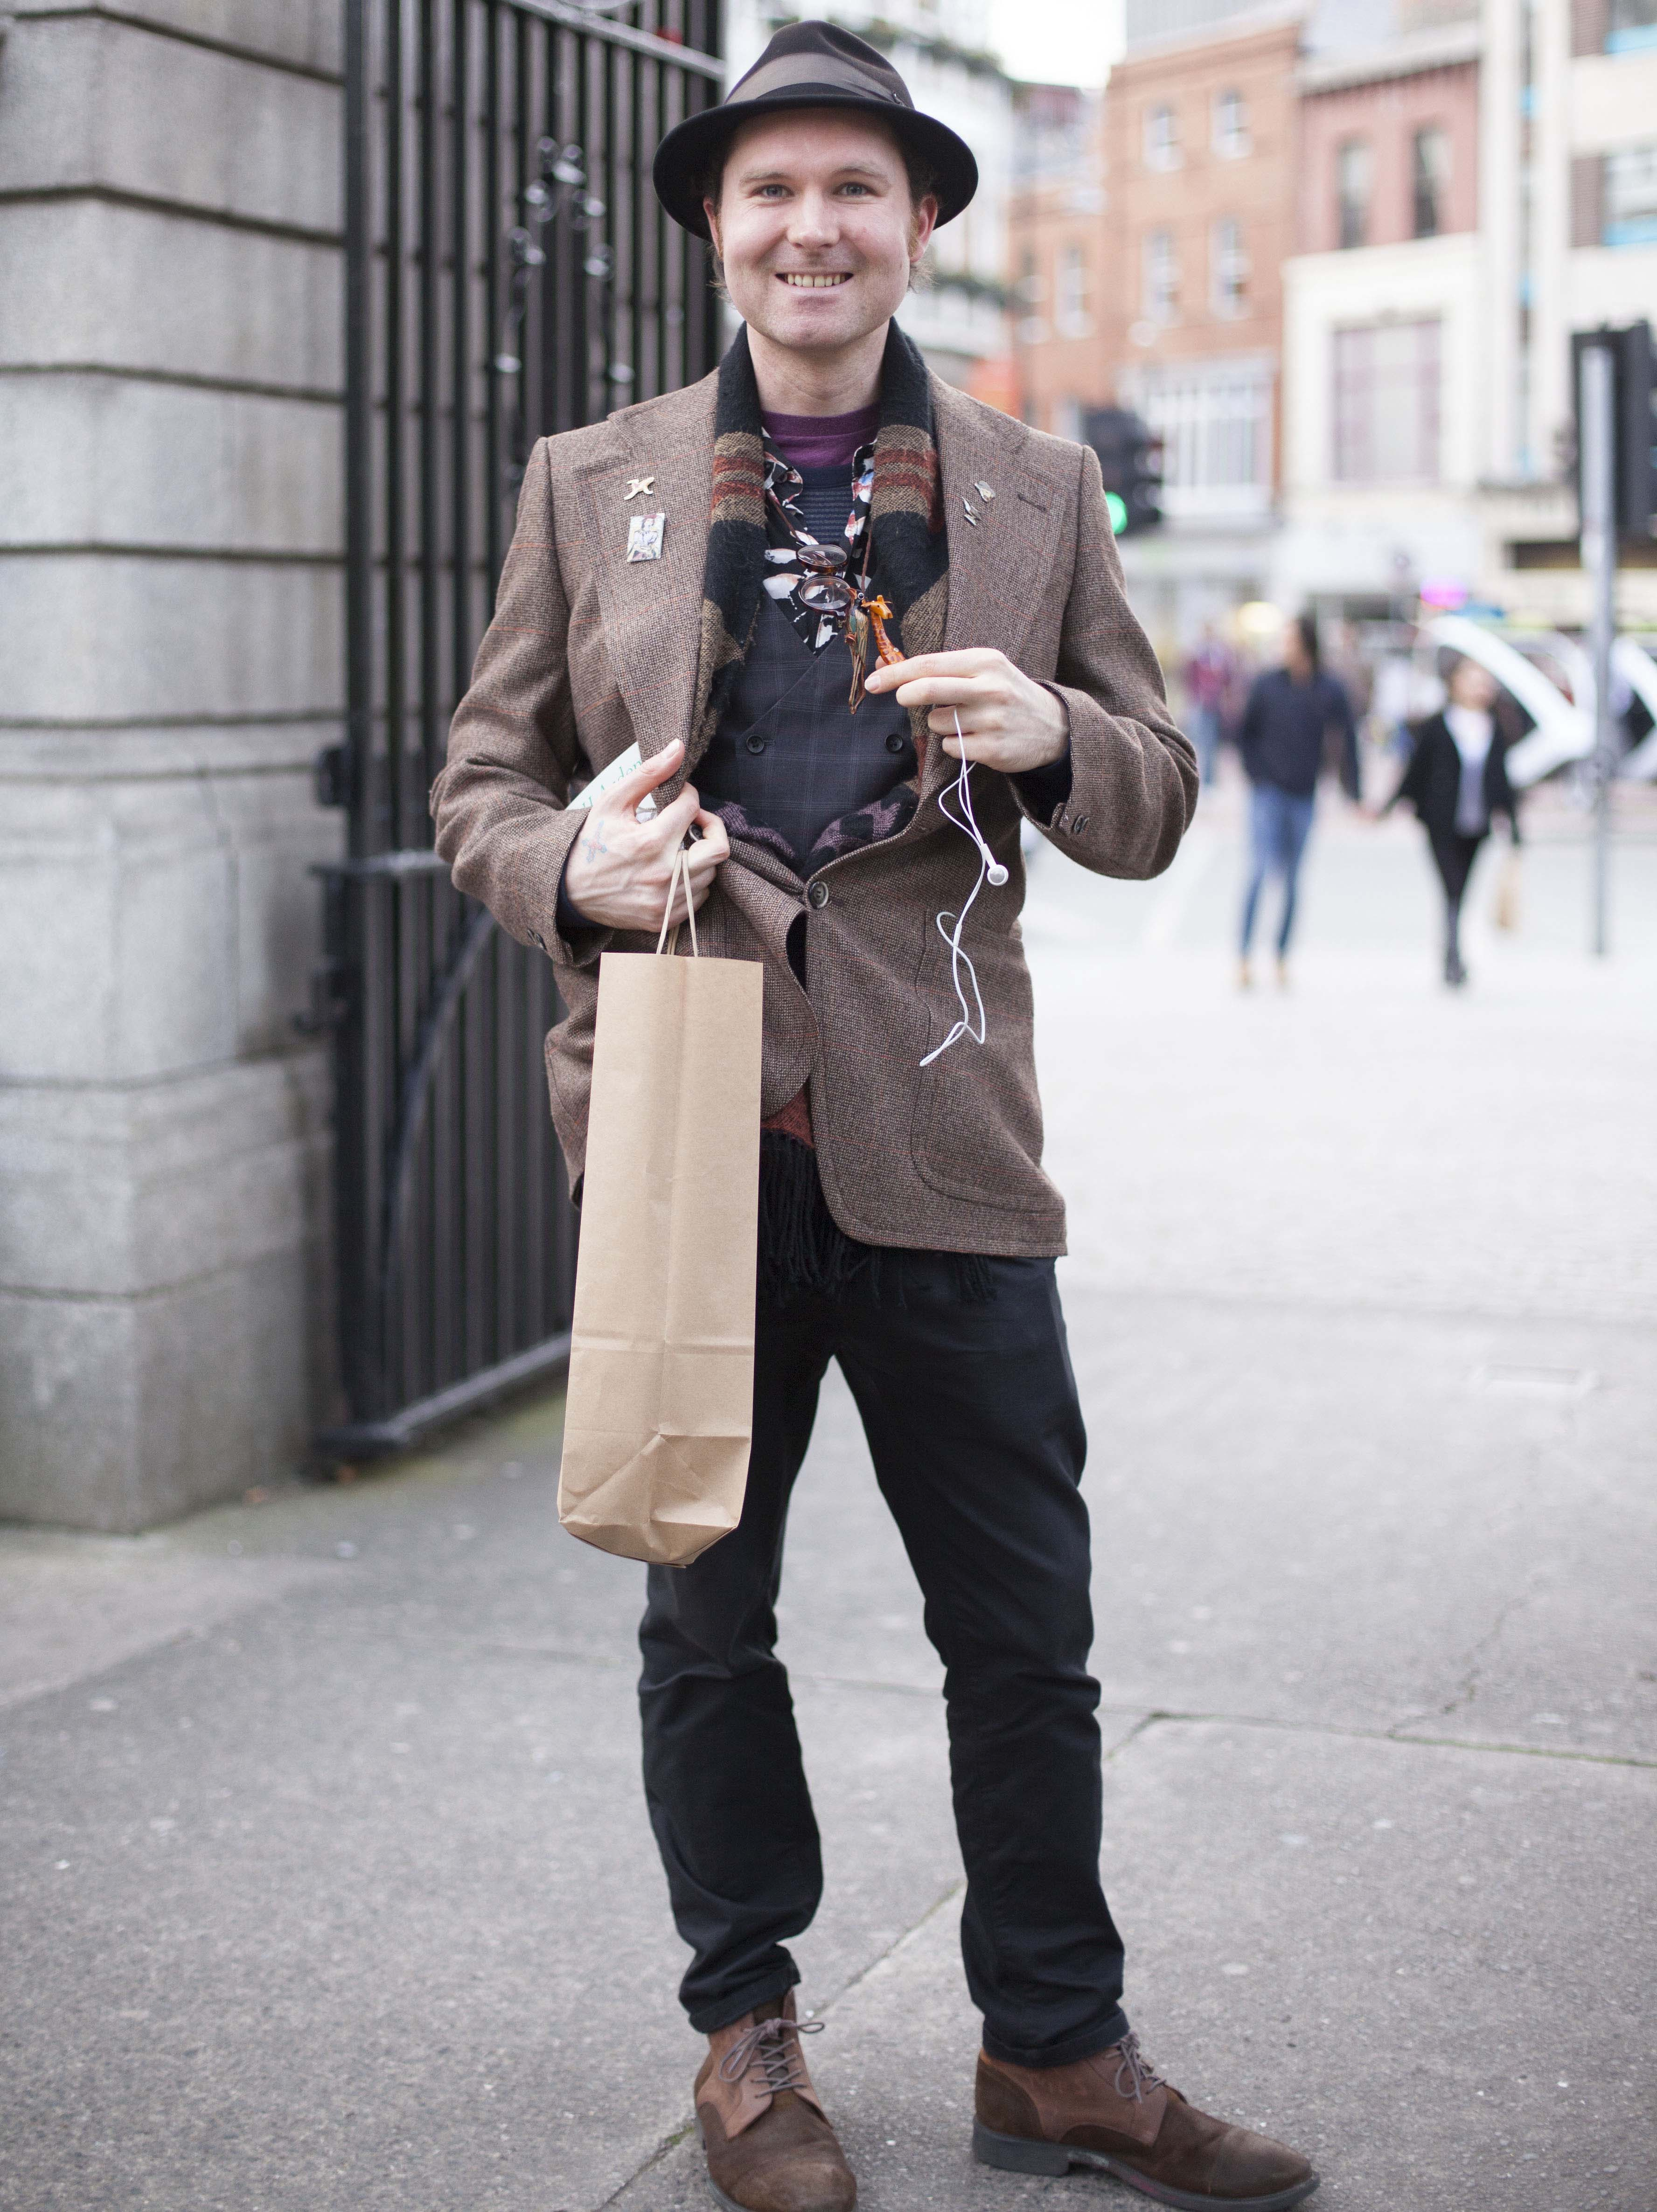 On the street: Dublin